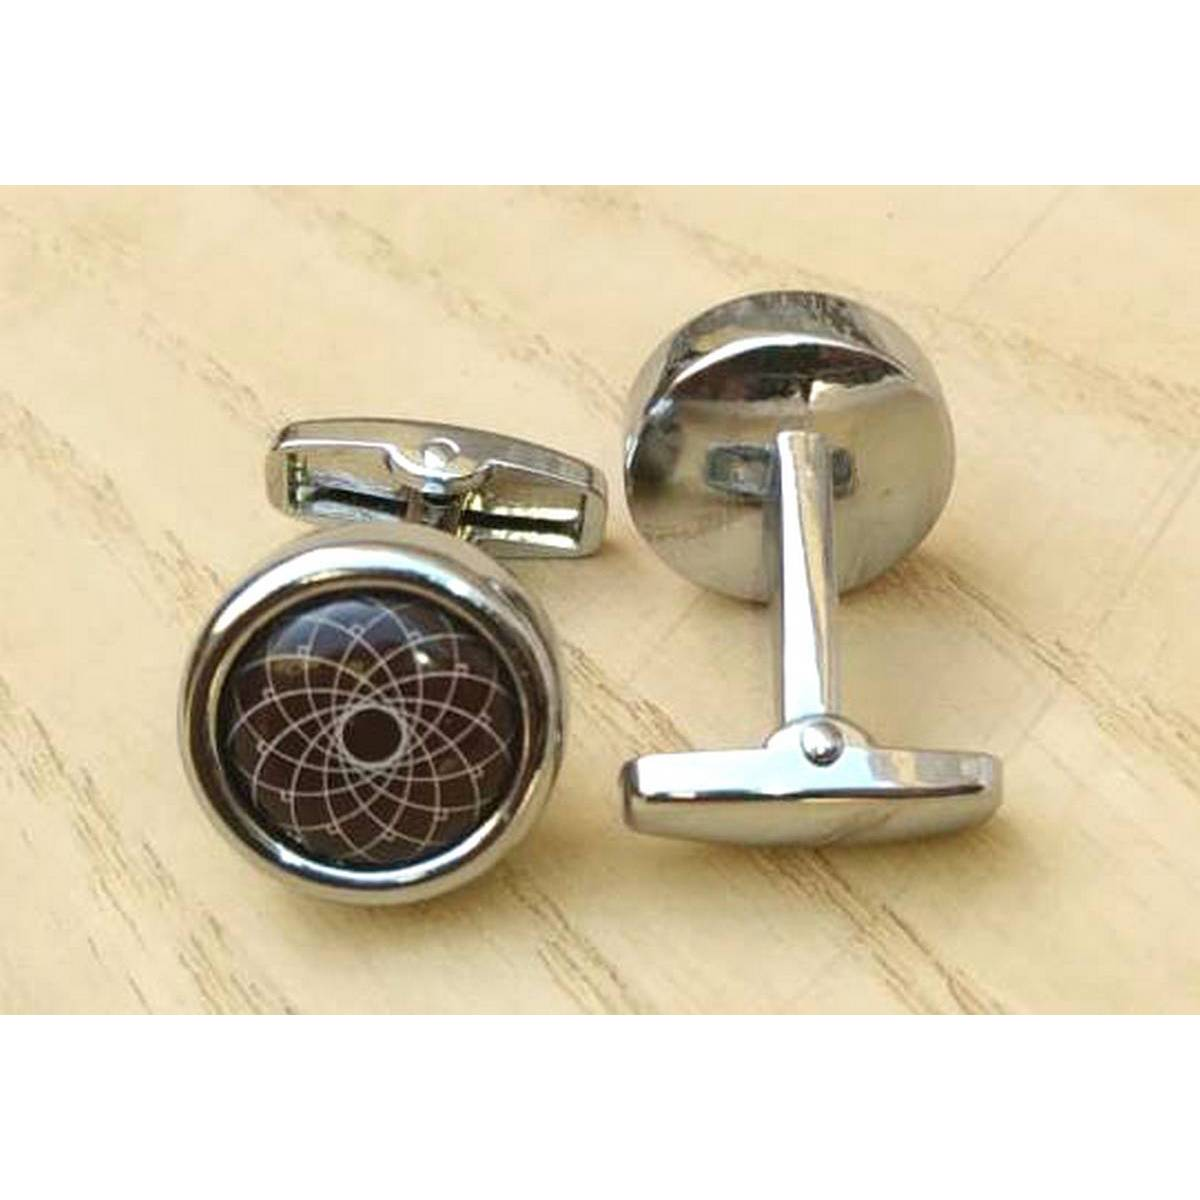 Stylish and High Quality Cuff links for Men